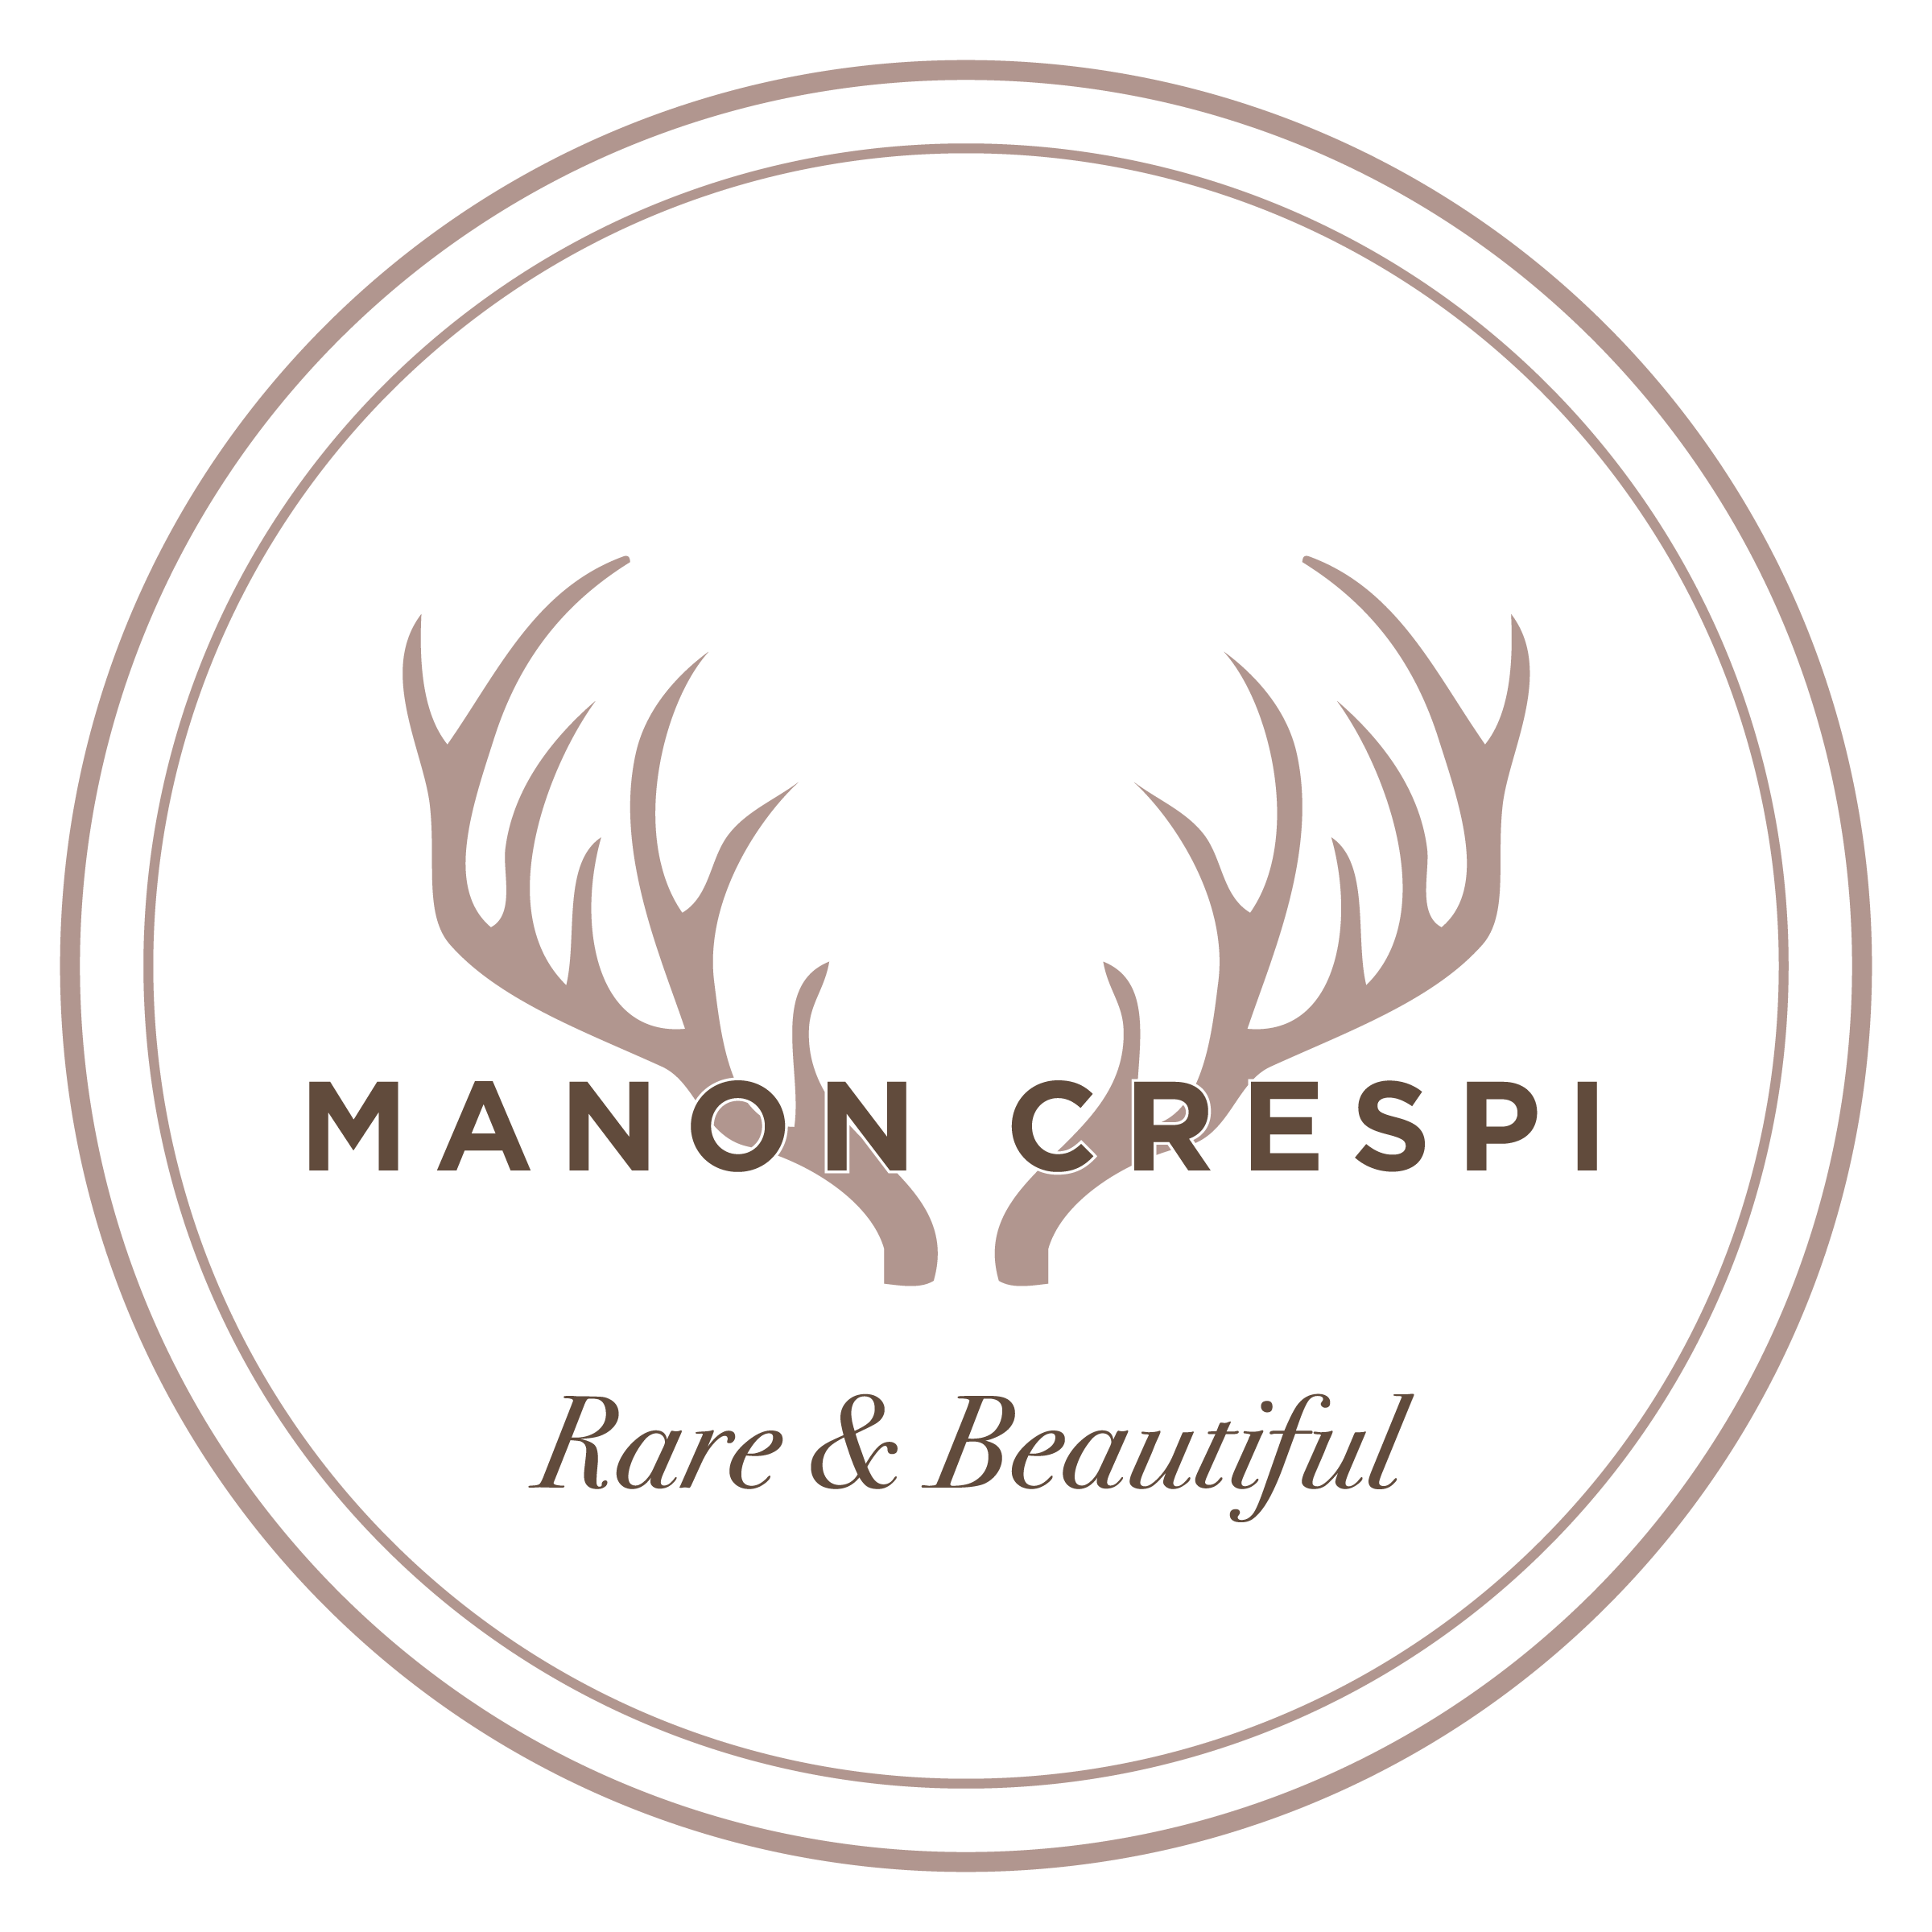 Manon-Crespi-Complete.png